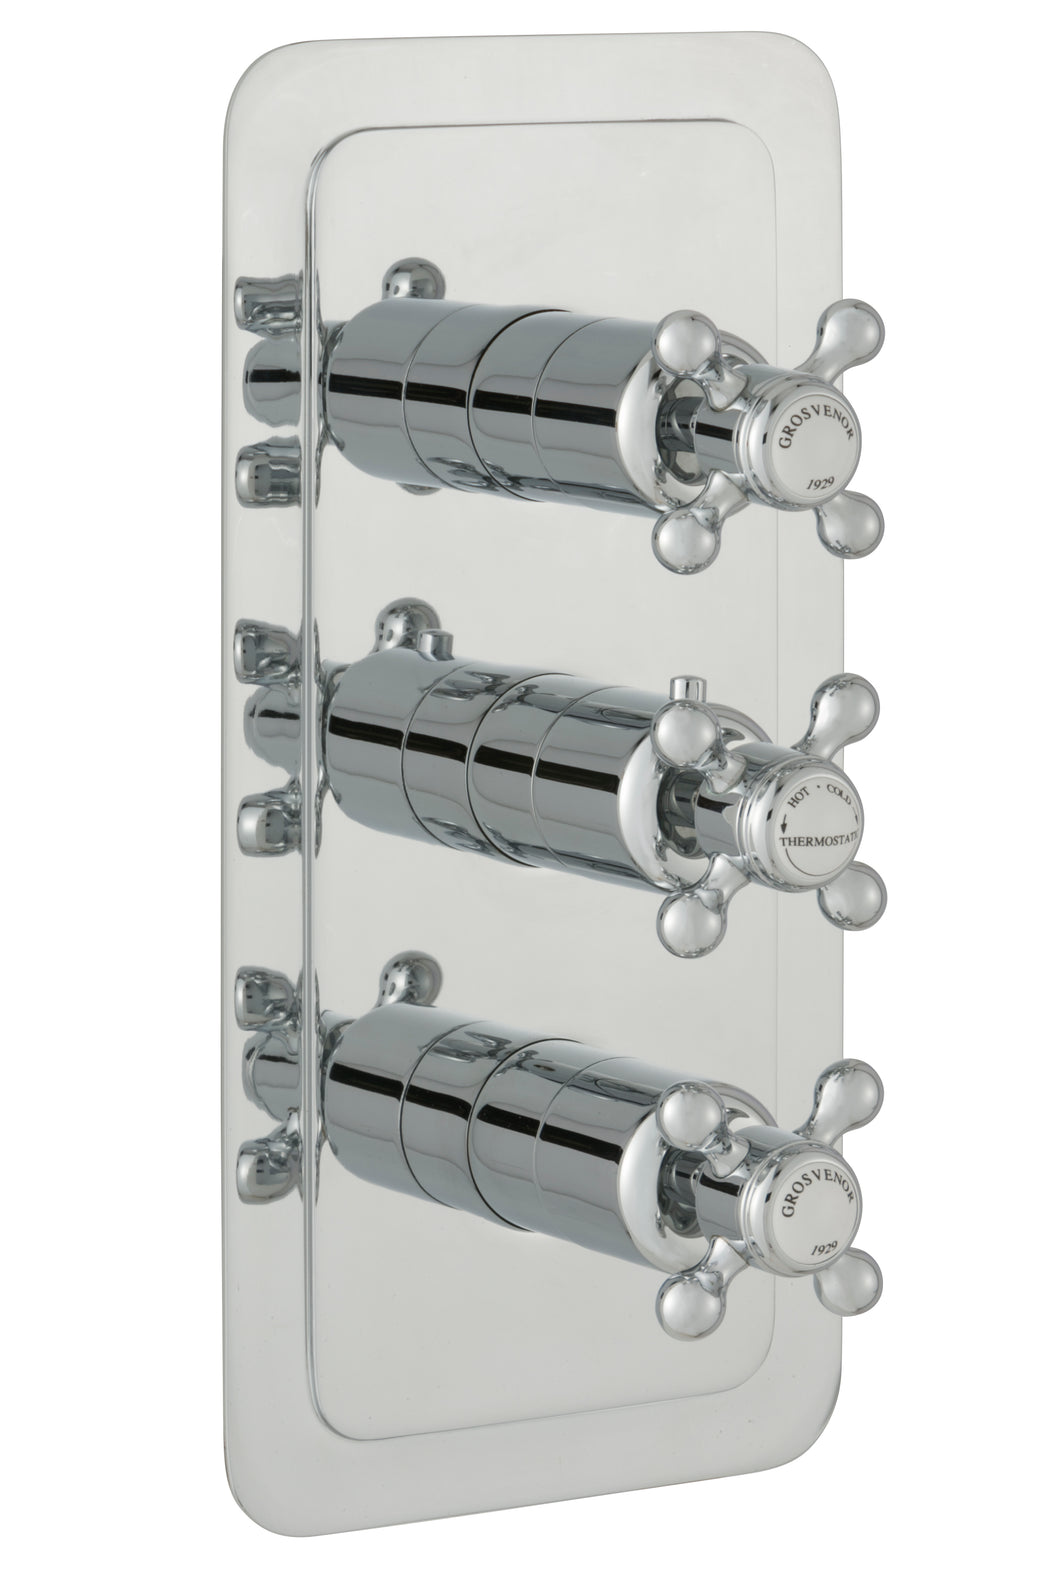 Chester Crosshead Two Outlet 3 Control Concealed Thermostatic Shower Valve Vertical - Nickel